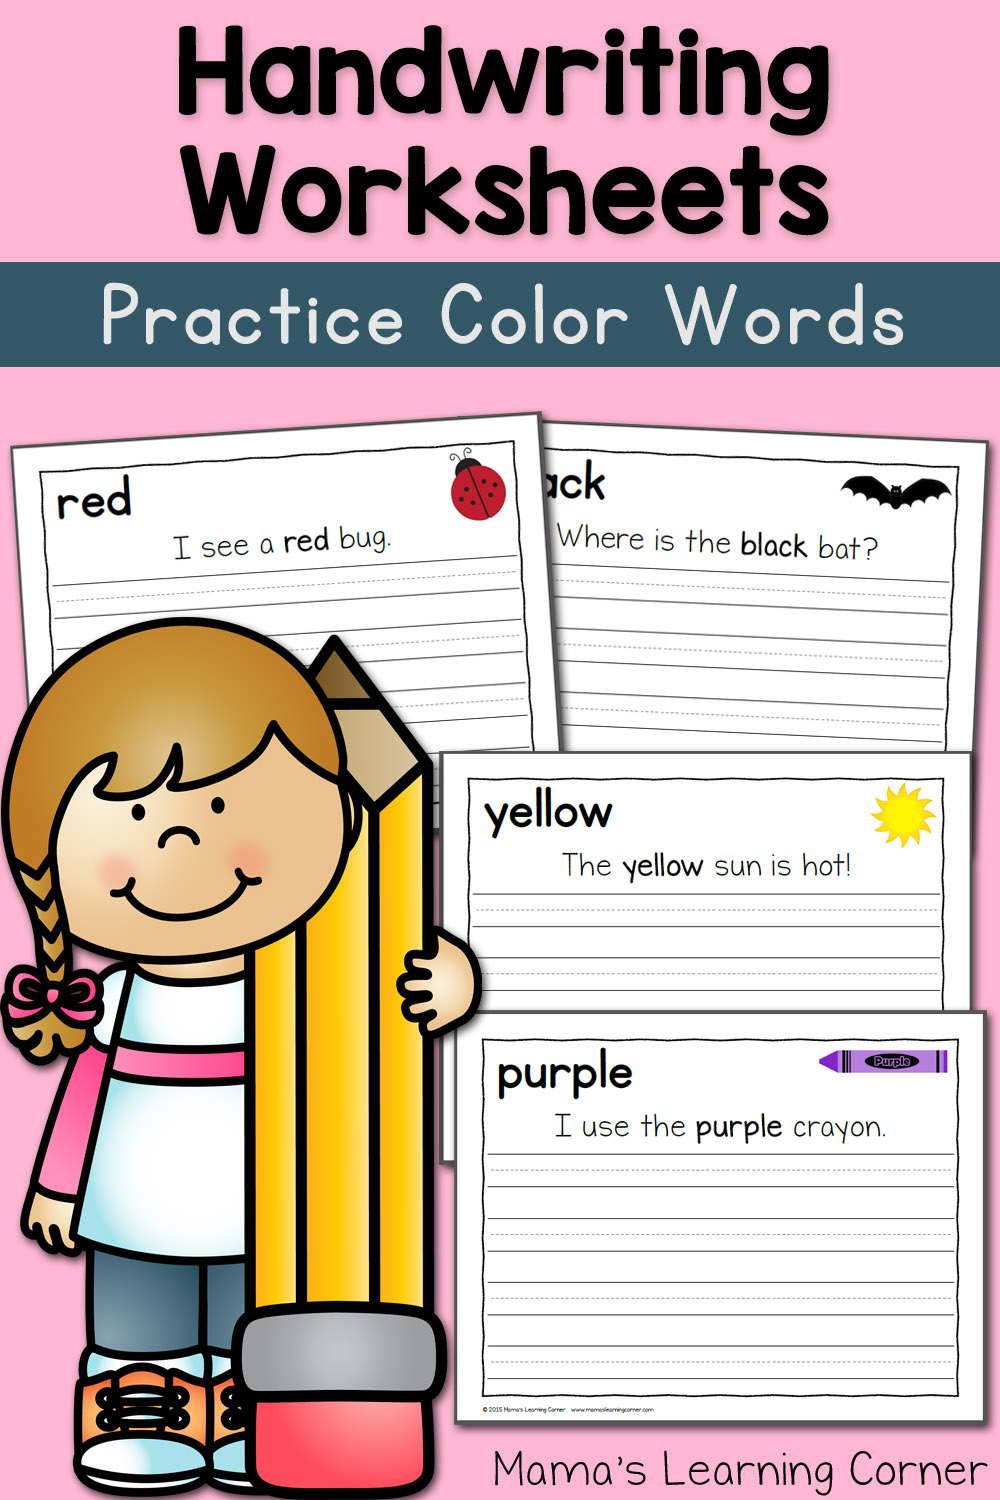 medium resolution of Handwriting Worksheets for Kids: Color Words! - Mamas Learning Corner